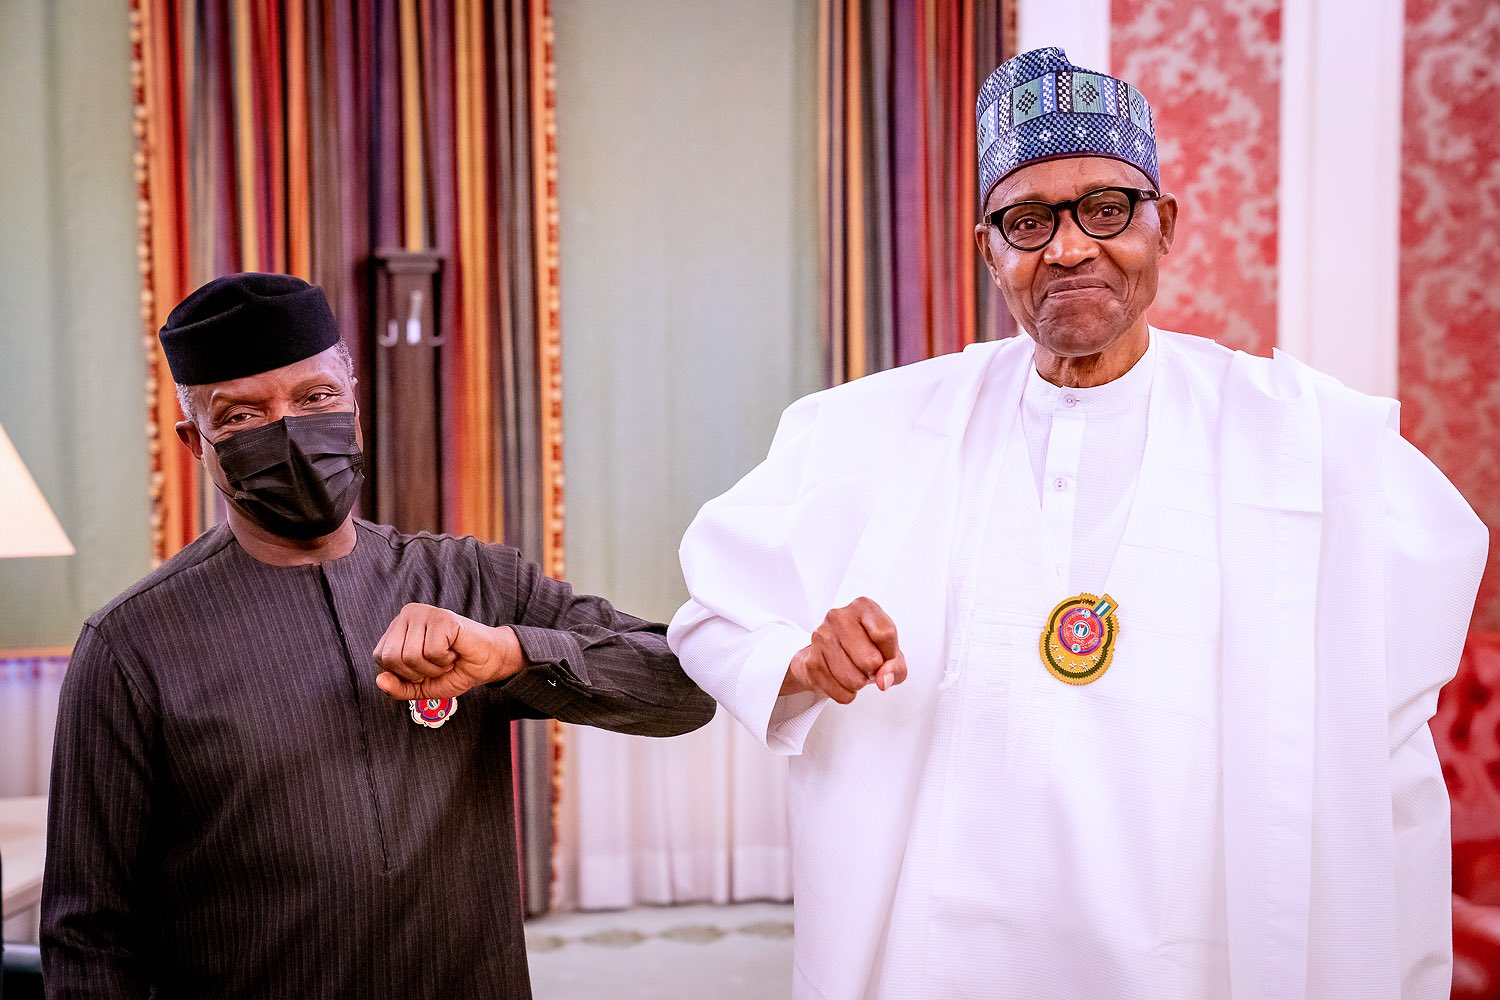 Buhari, Osinbajo To Spend N3.4bn on Feeding, Traveling In 2021